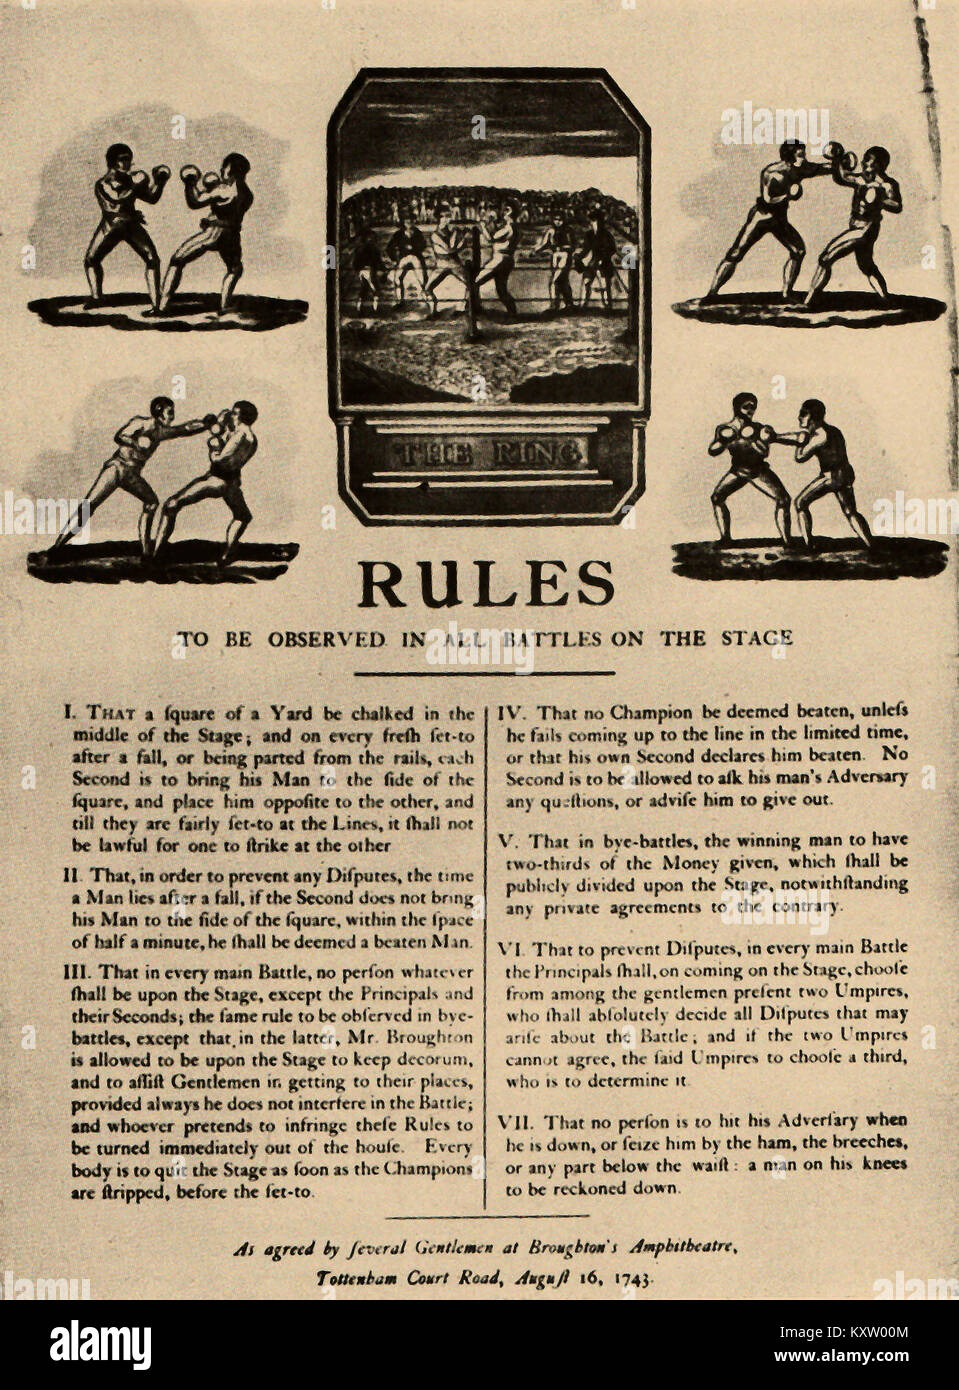 Combat Sport - British Boxing history - BOXING - A set of rules for boxing drawn up by Jack Broughton in 1743 - Stock Image